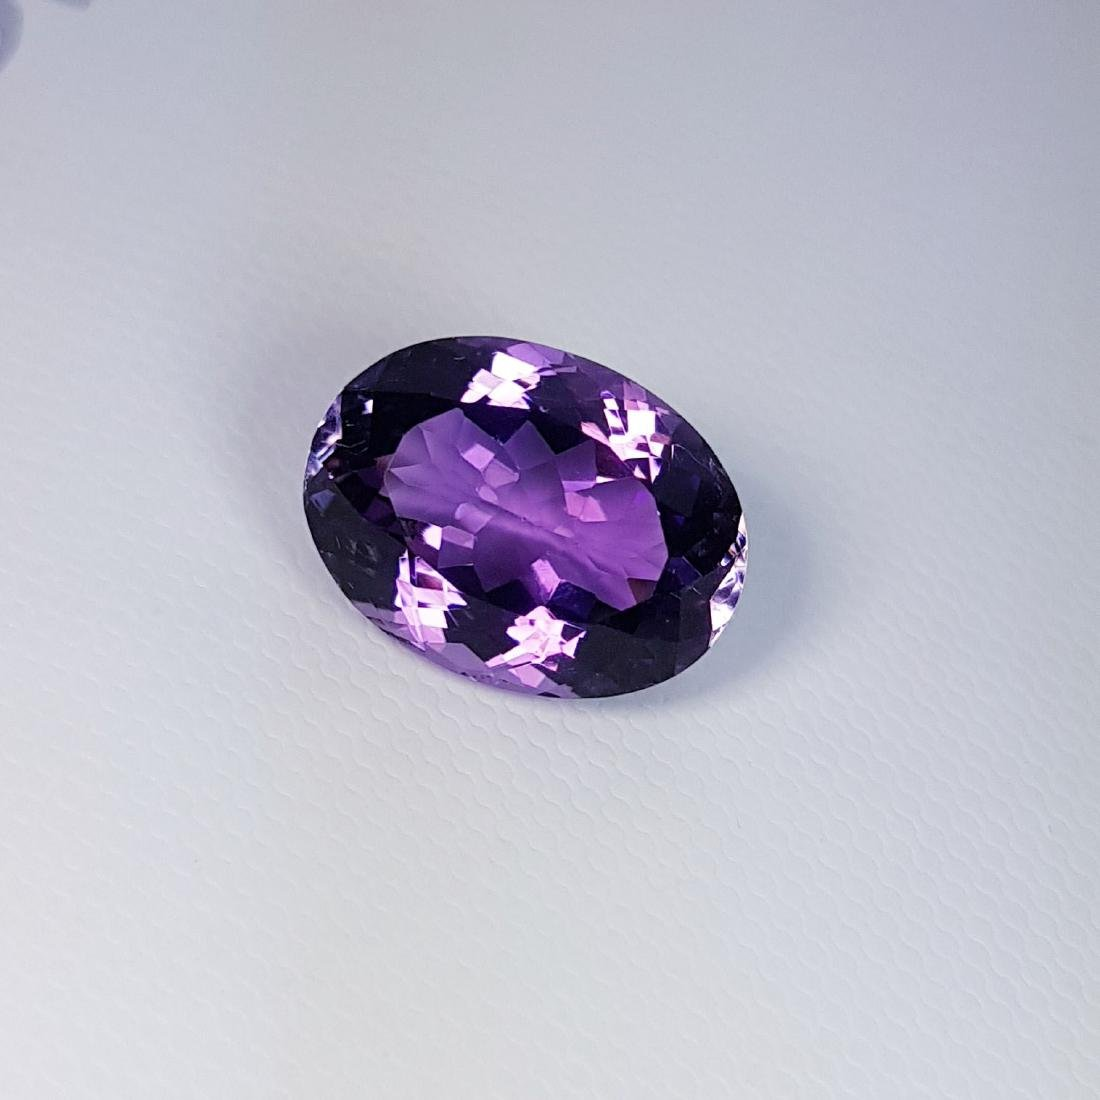 Collective Gem Natural Amethyst - 9.62 ct